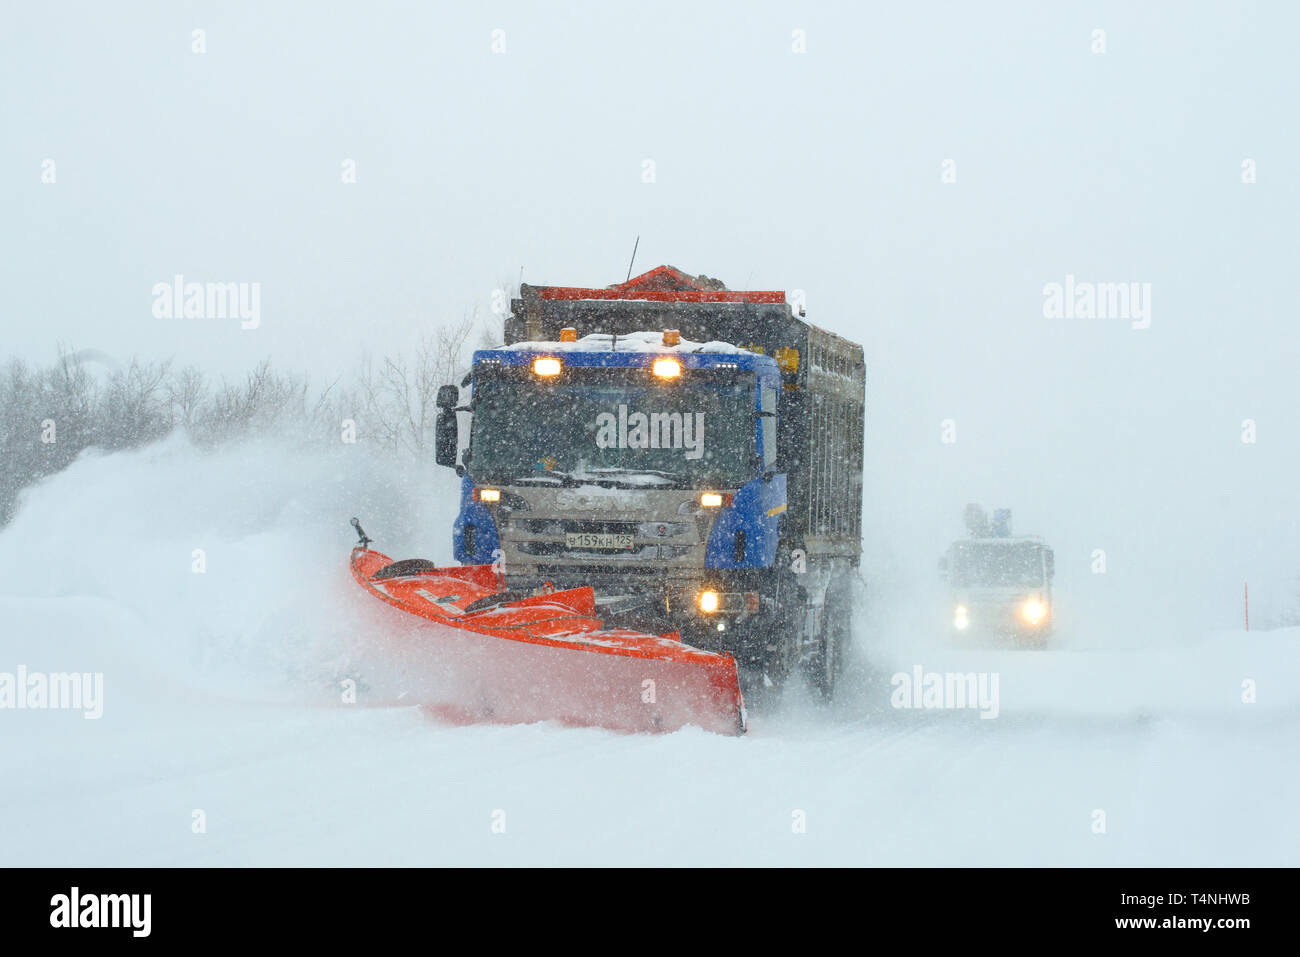 MURMANSK REGION, RUSSIA - FEBRUARY 21, 2019: Clearing the Murmansk-Teriberka road during a snow storm - Stock Image